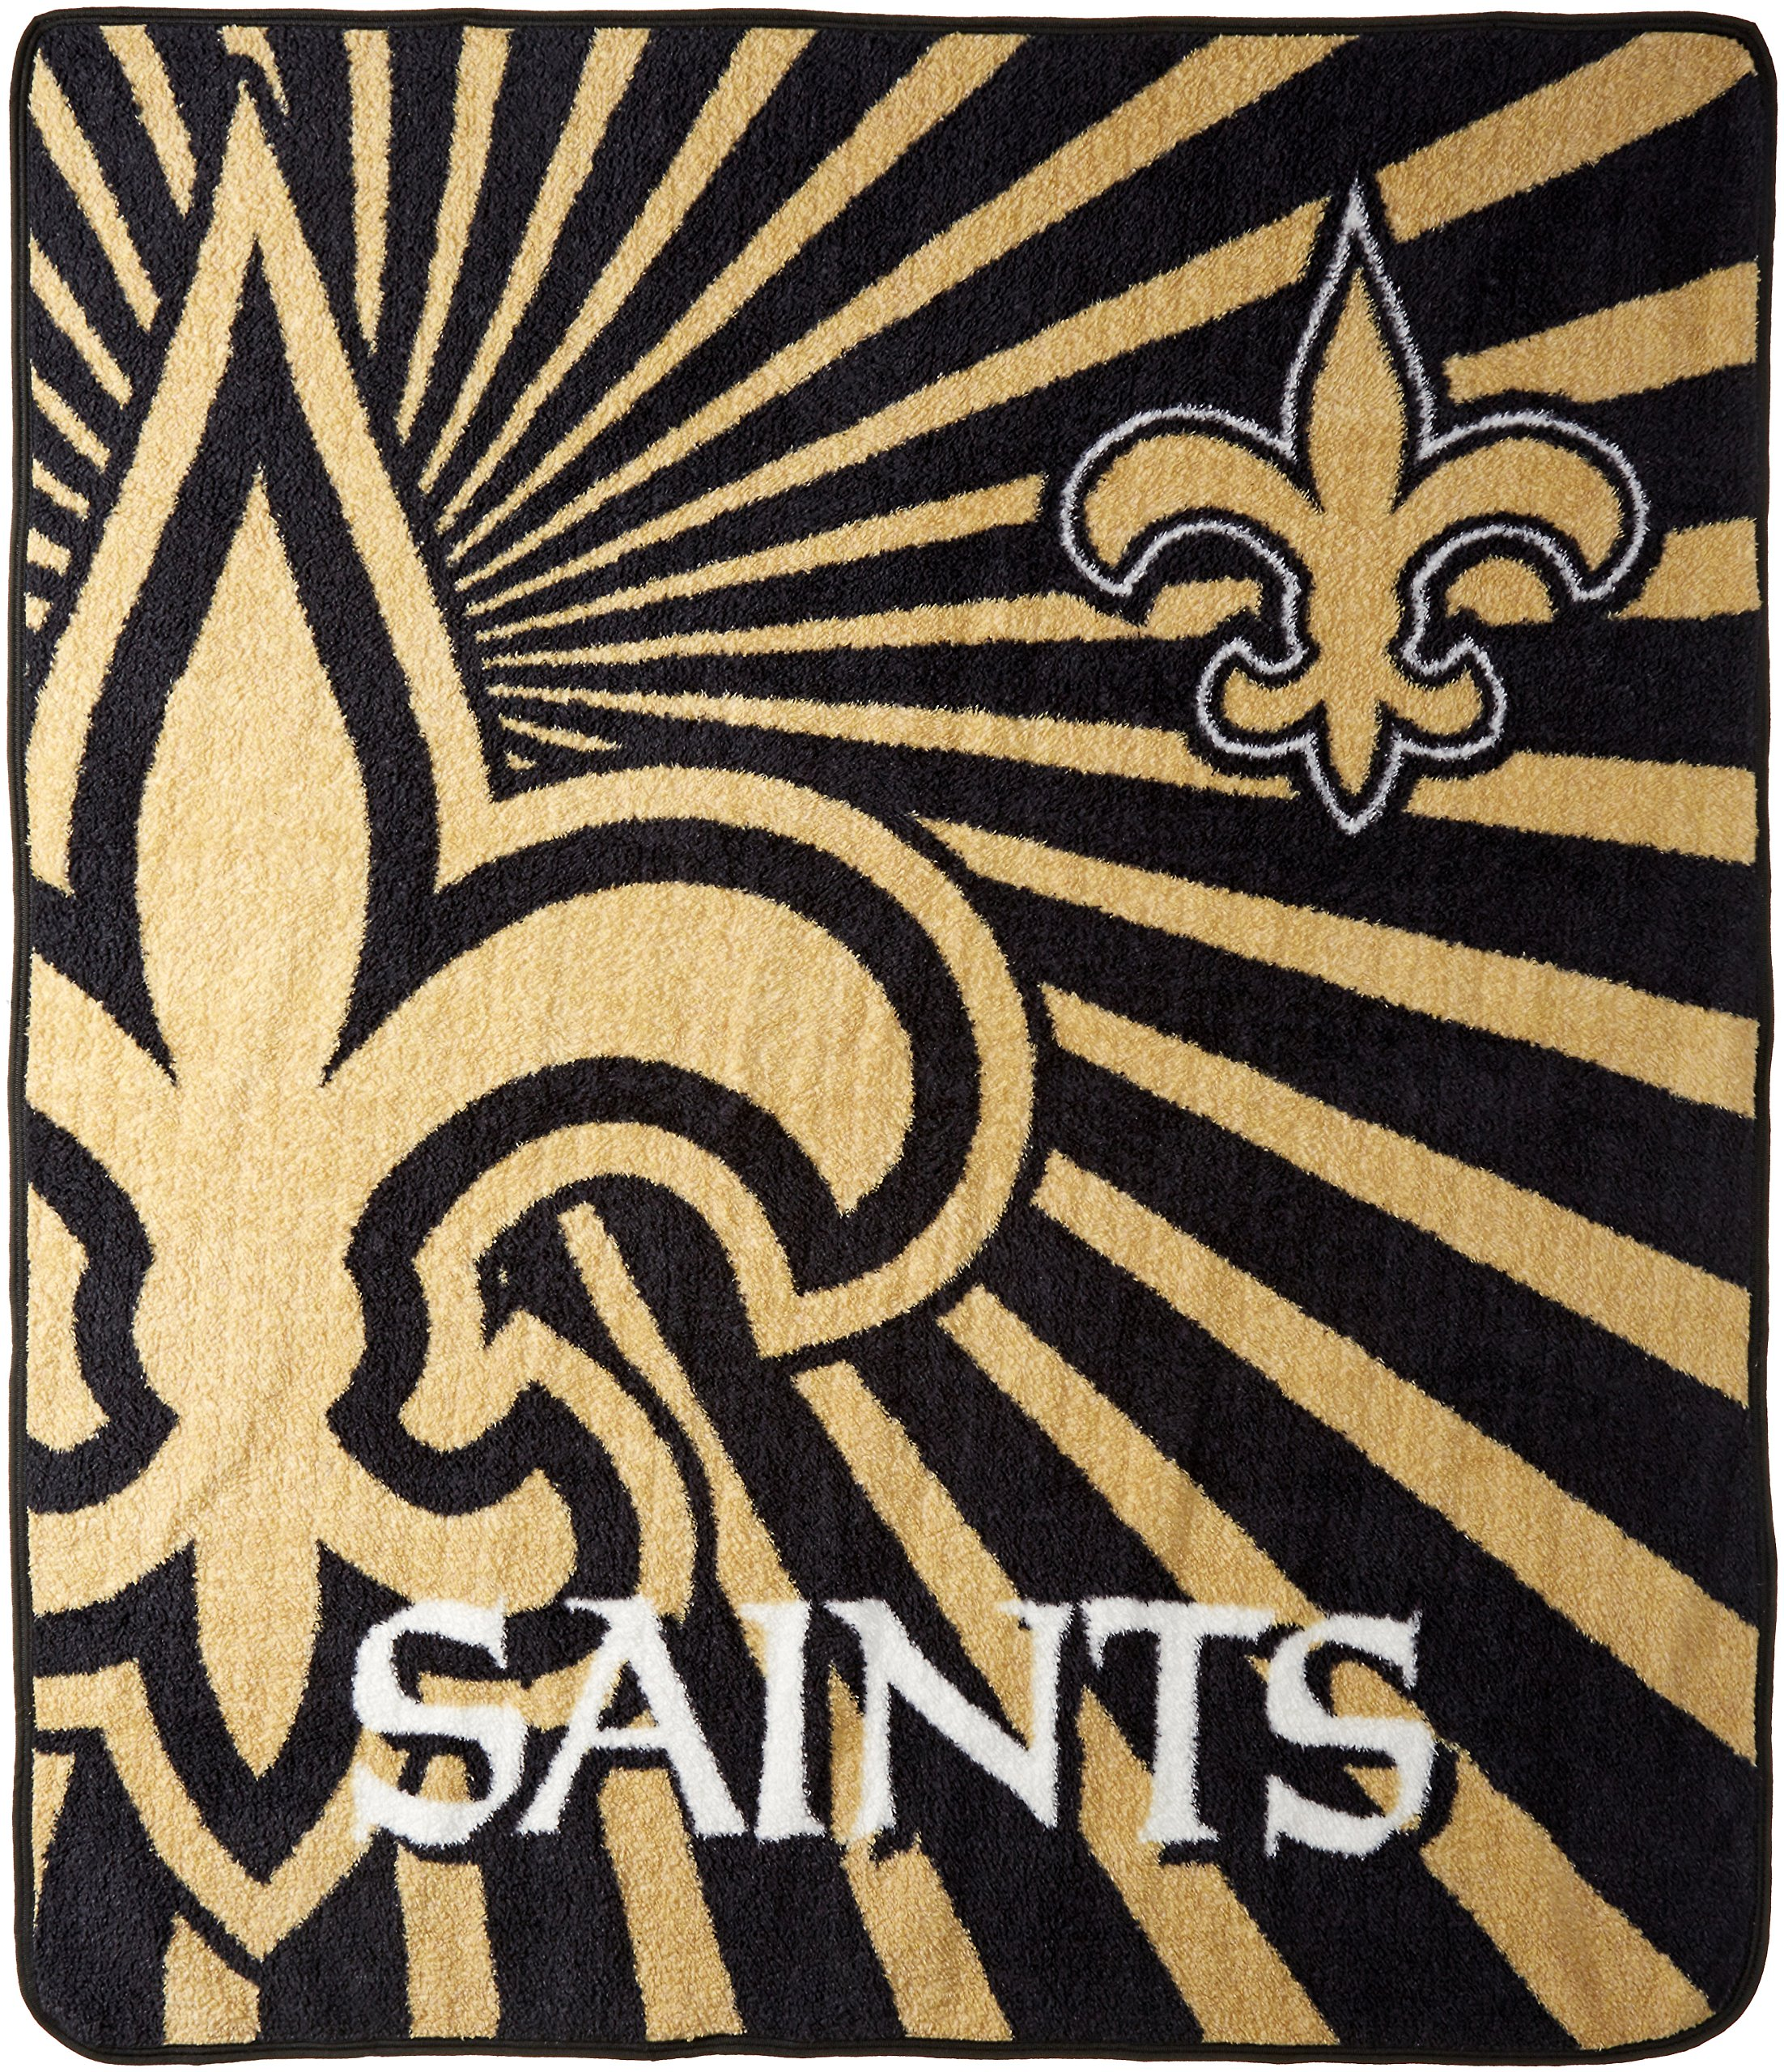 Officially Licensed NFL New Orleans Saints Strobe Sherpa on Sherpa Throw Blanket, 50'' x 60'' by The Northwest Company